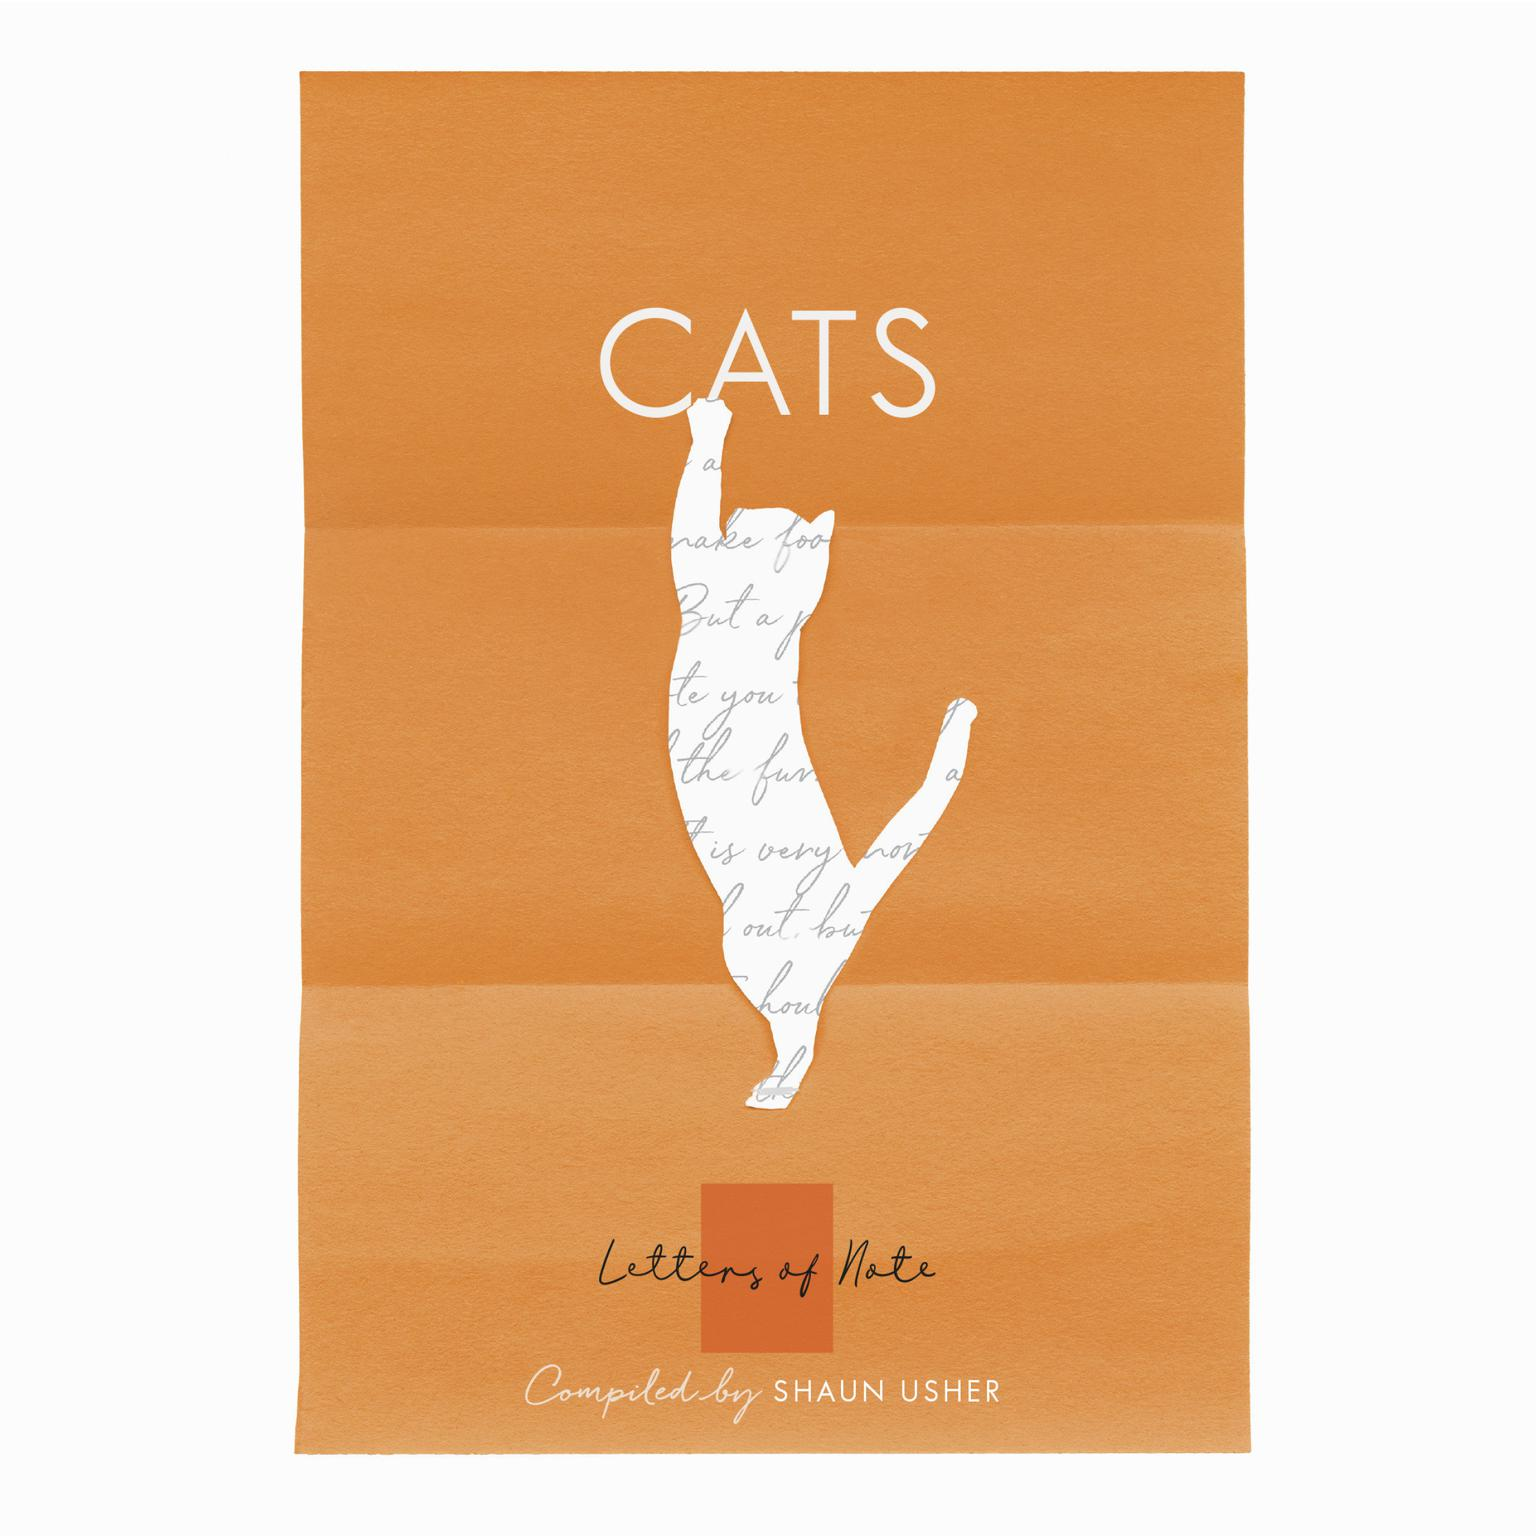 Letters of Note: Cats Audiobook, by Shaun Usher